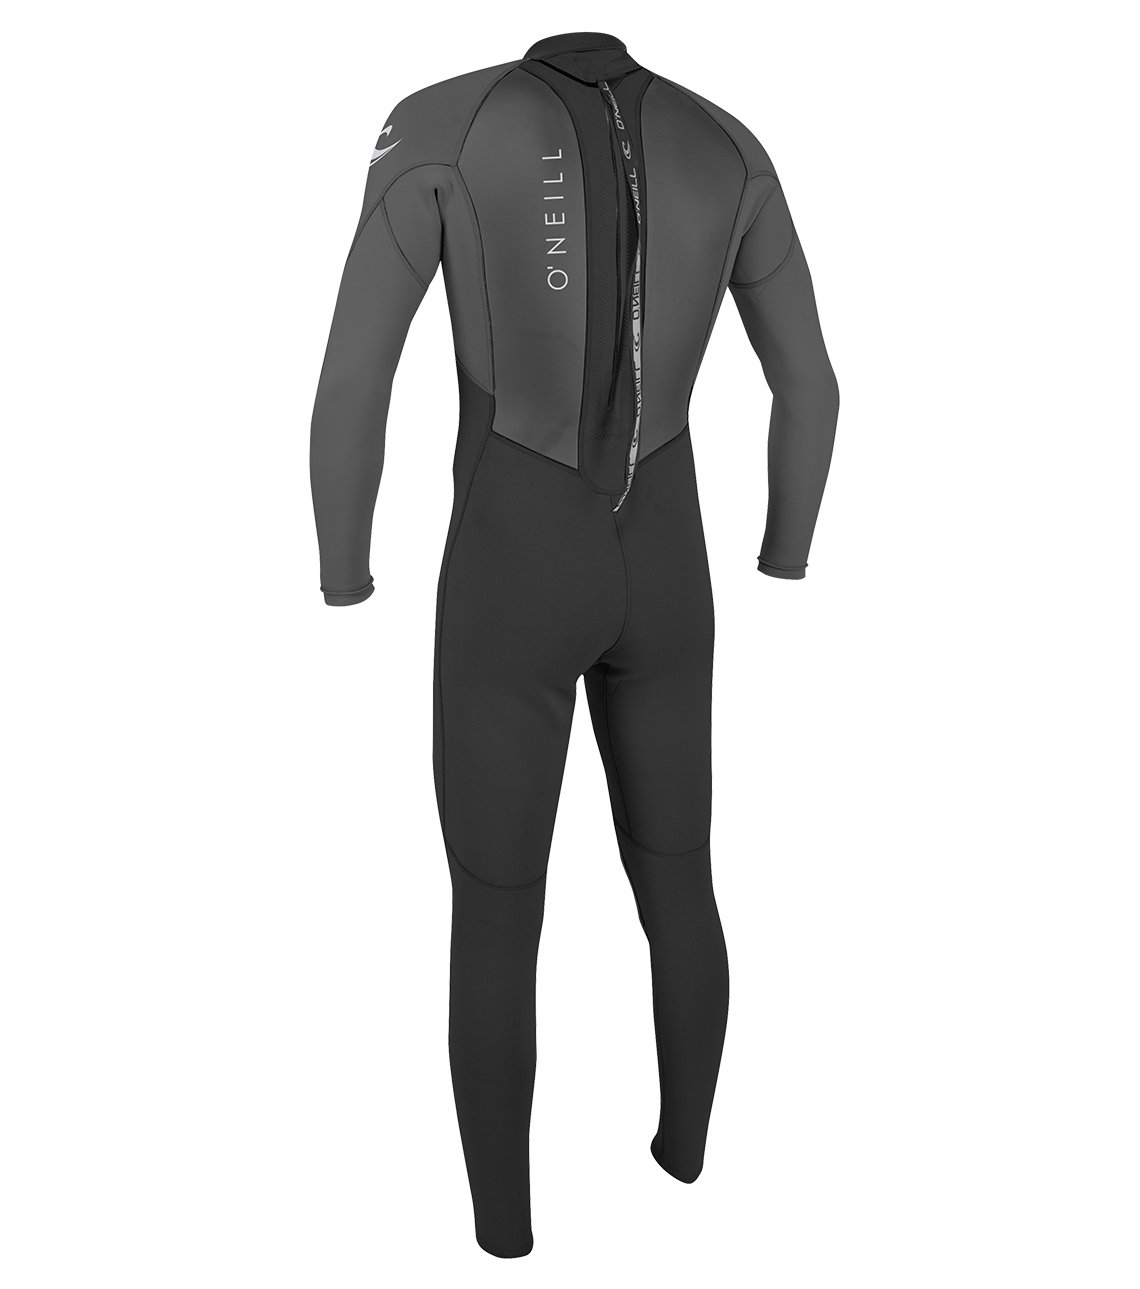 O'Neill Men's Reactor II 3/2mm Back Zip Full Wetsuit, Black/Graphite, Medium by O'Neill Wetsuits (Image #2)